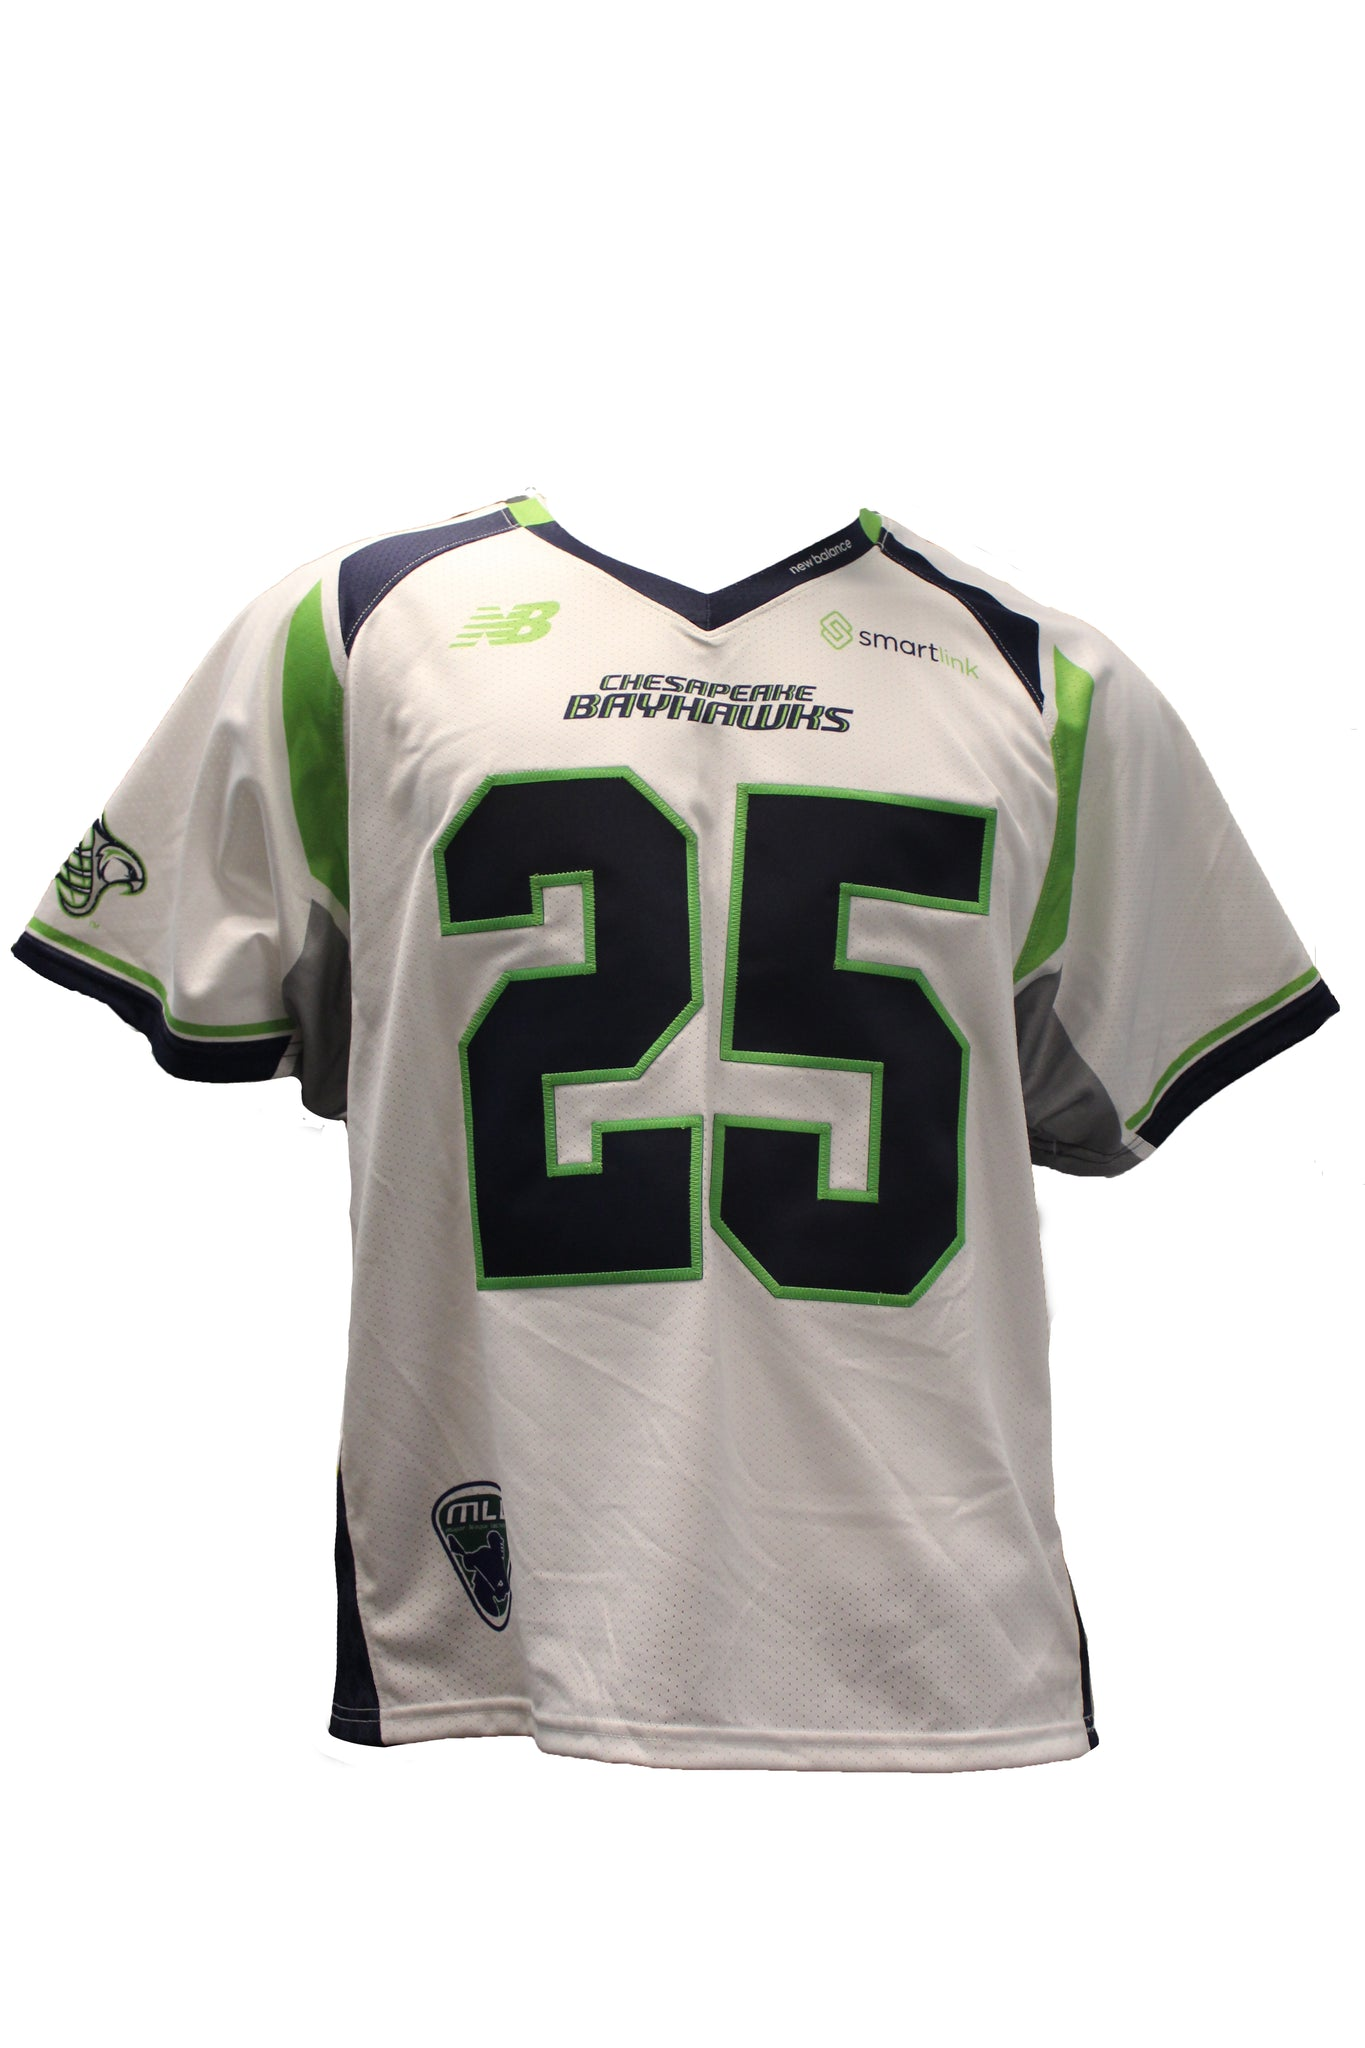 2018 Ryan Hursey Game-Worn White Jersey